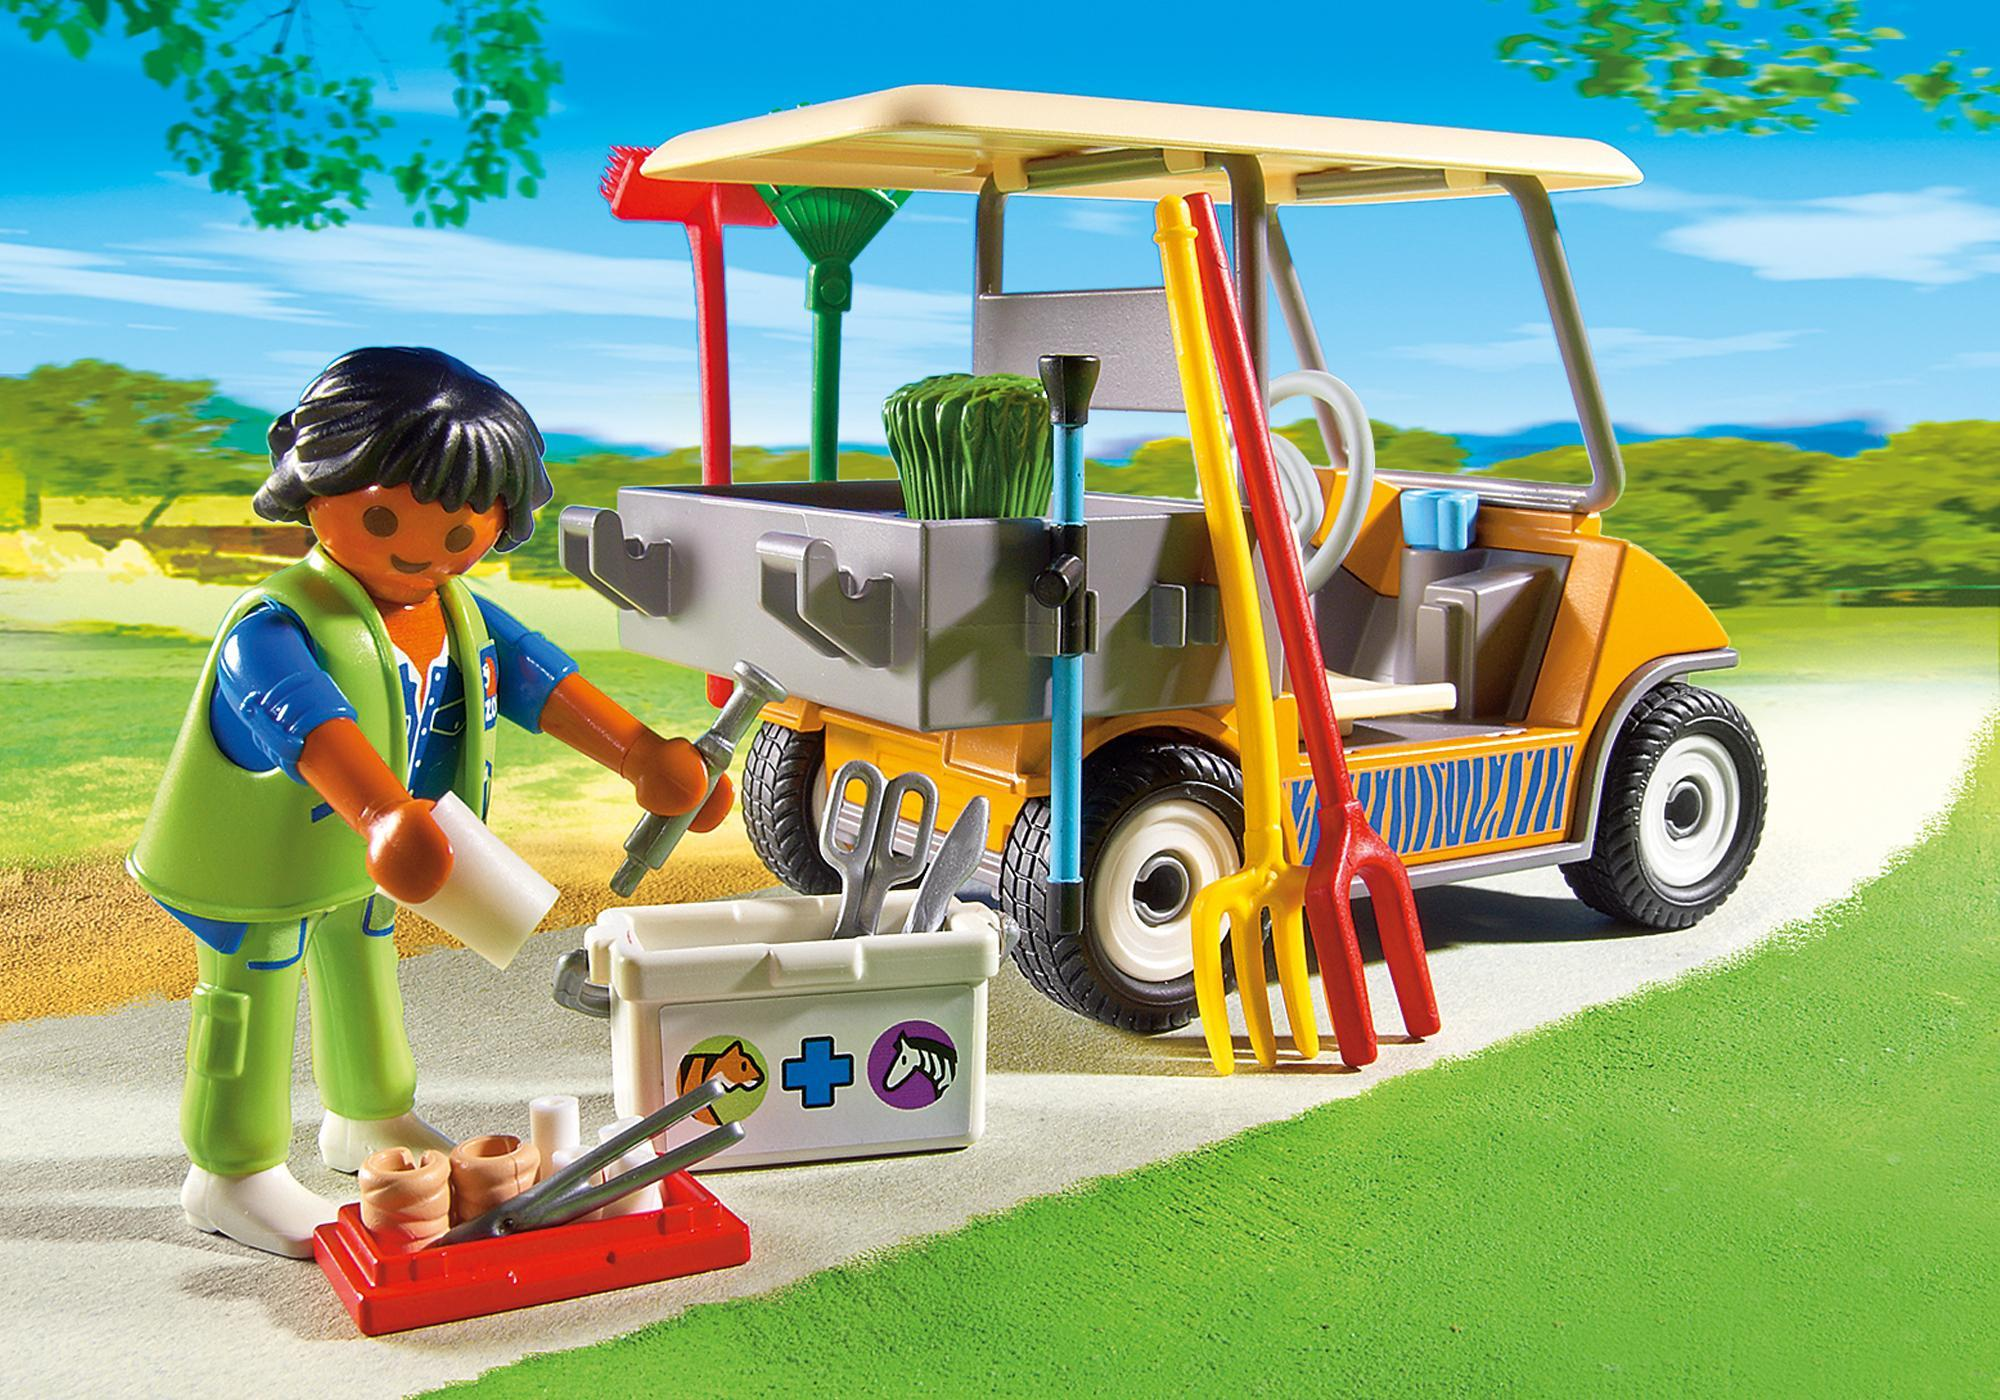 http://media.playmobil.com/i/playmobil/6636_product_extra1